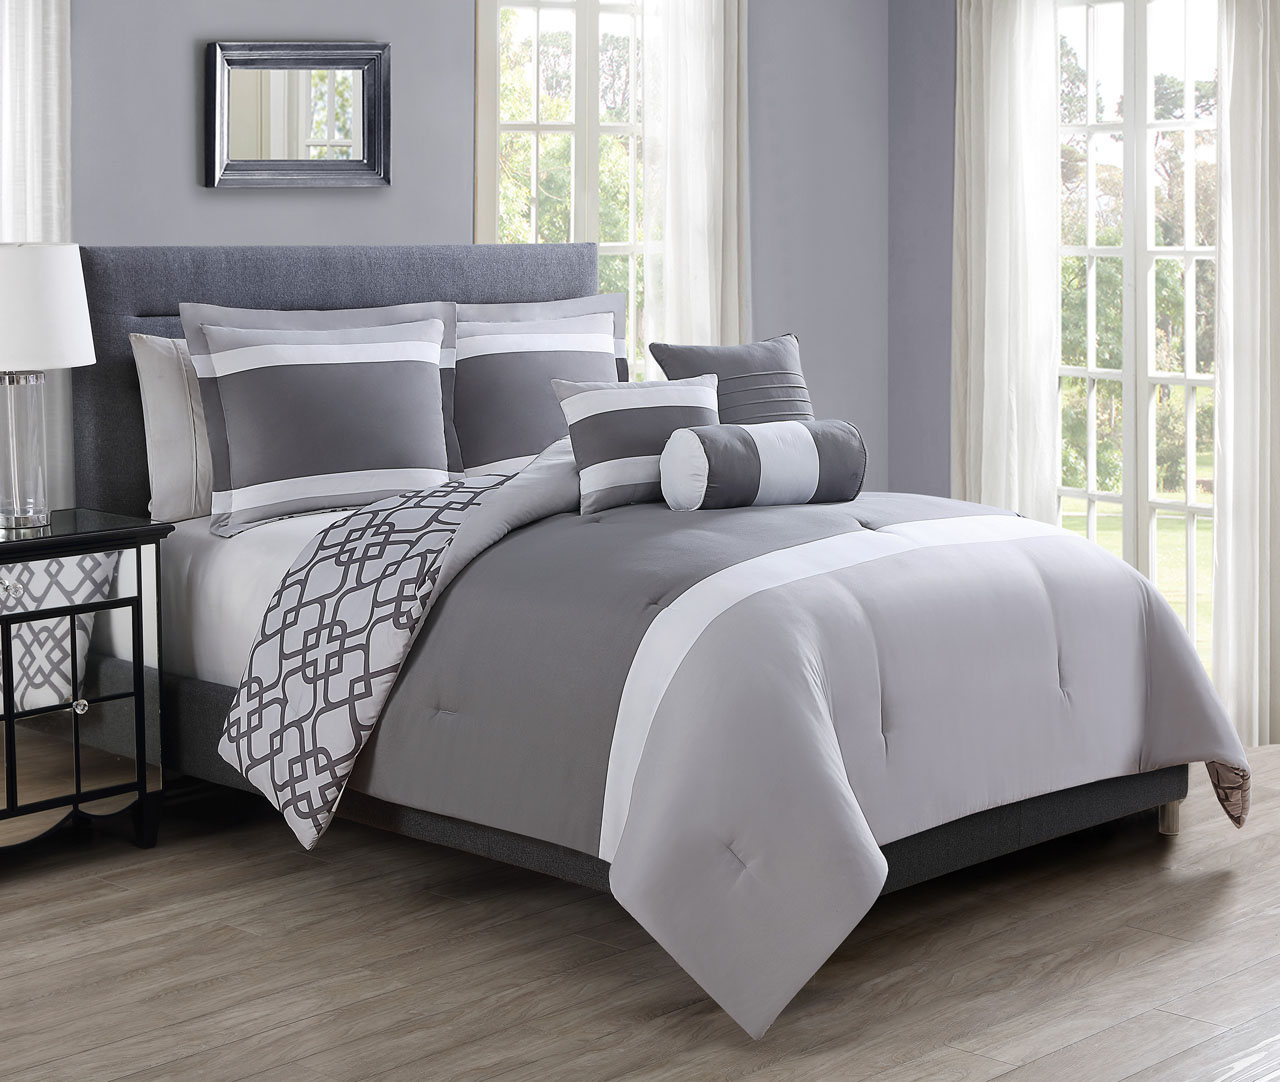 6 Piece Yera Gray/Charcoal Reversible Comforter Set